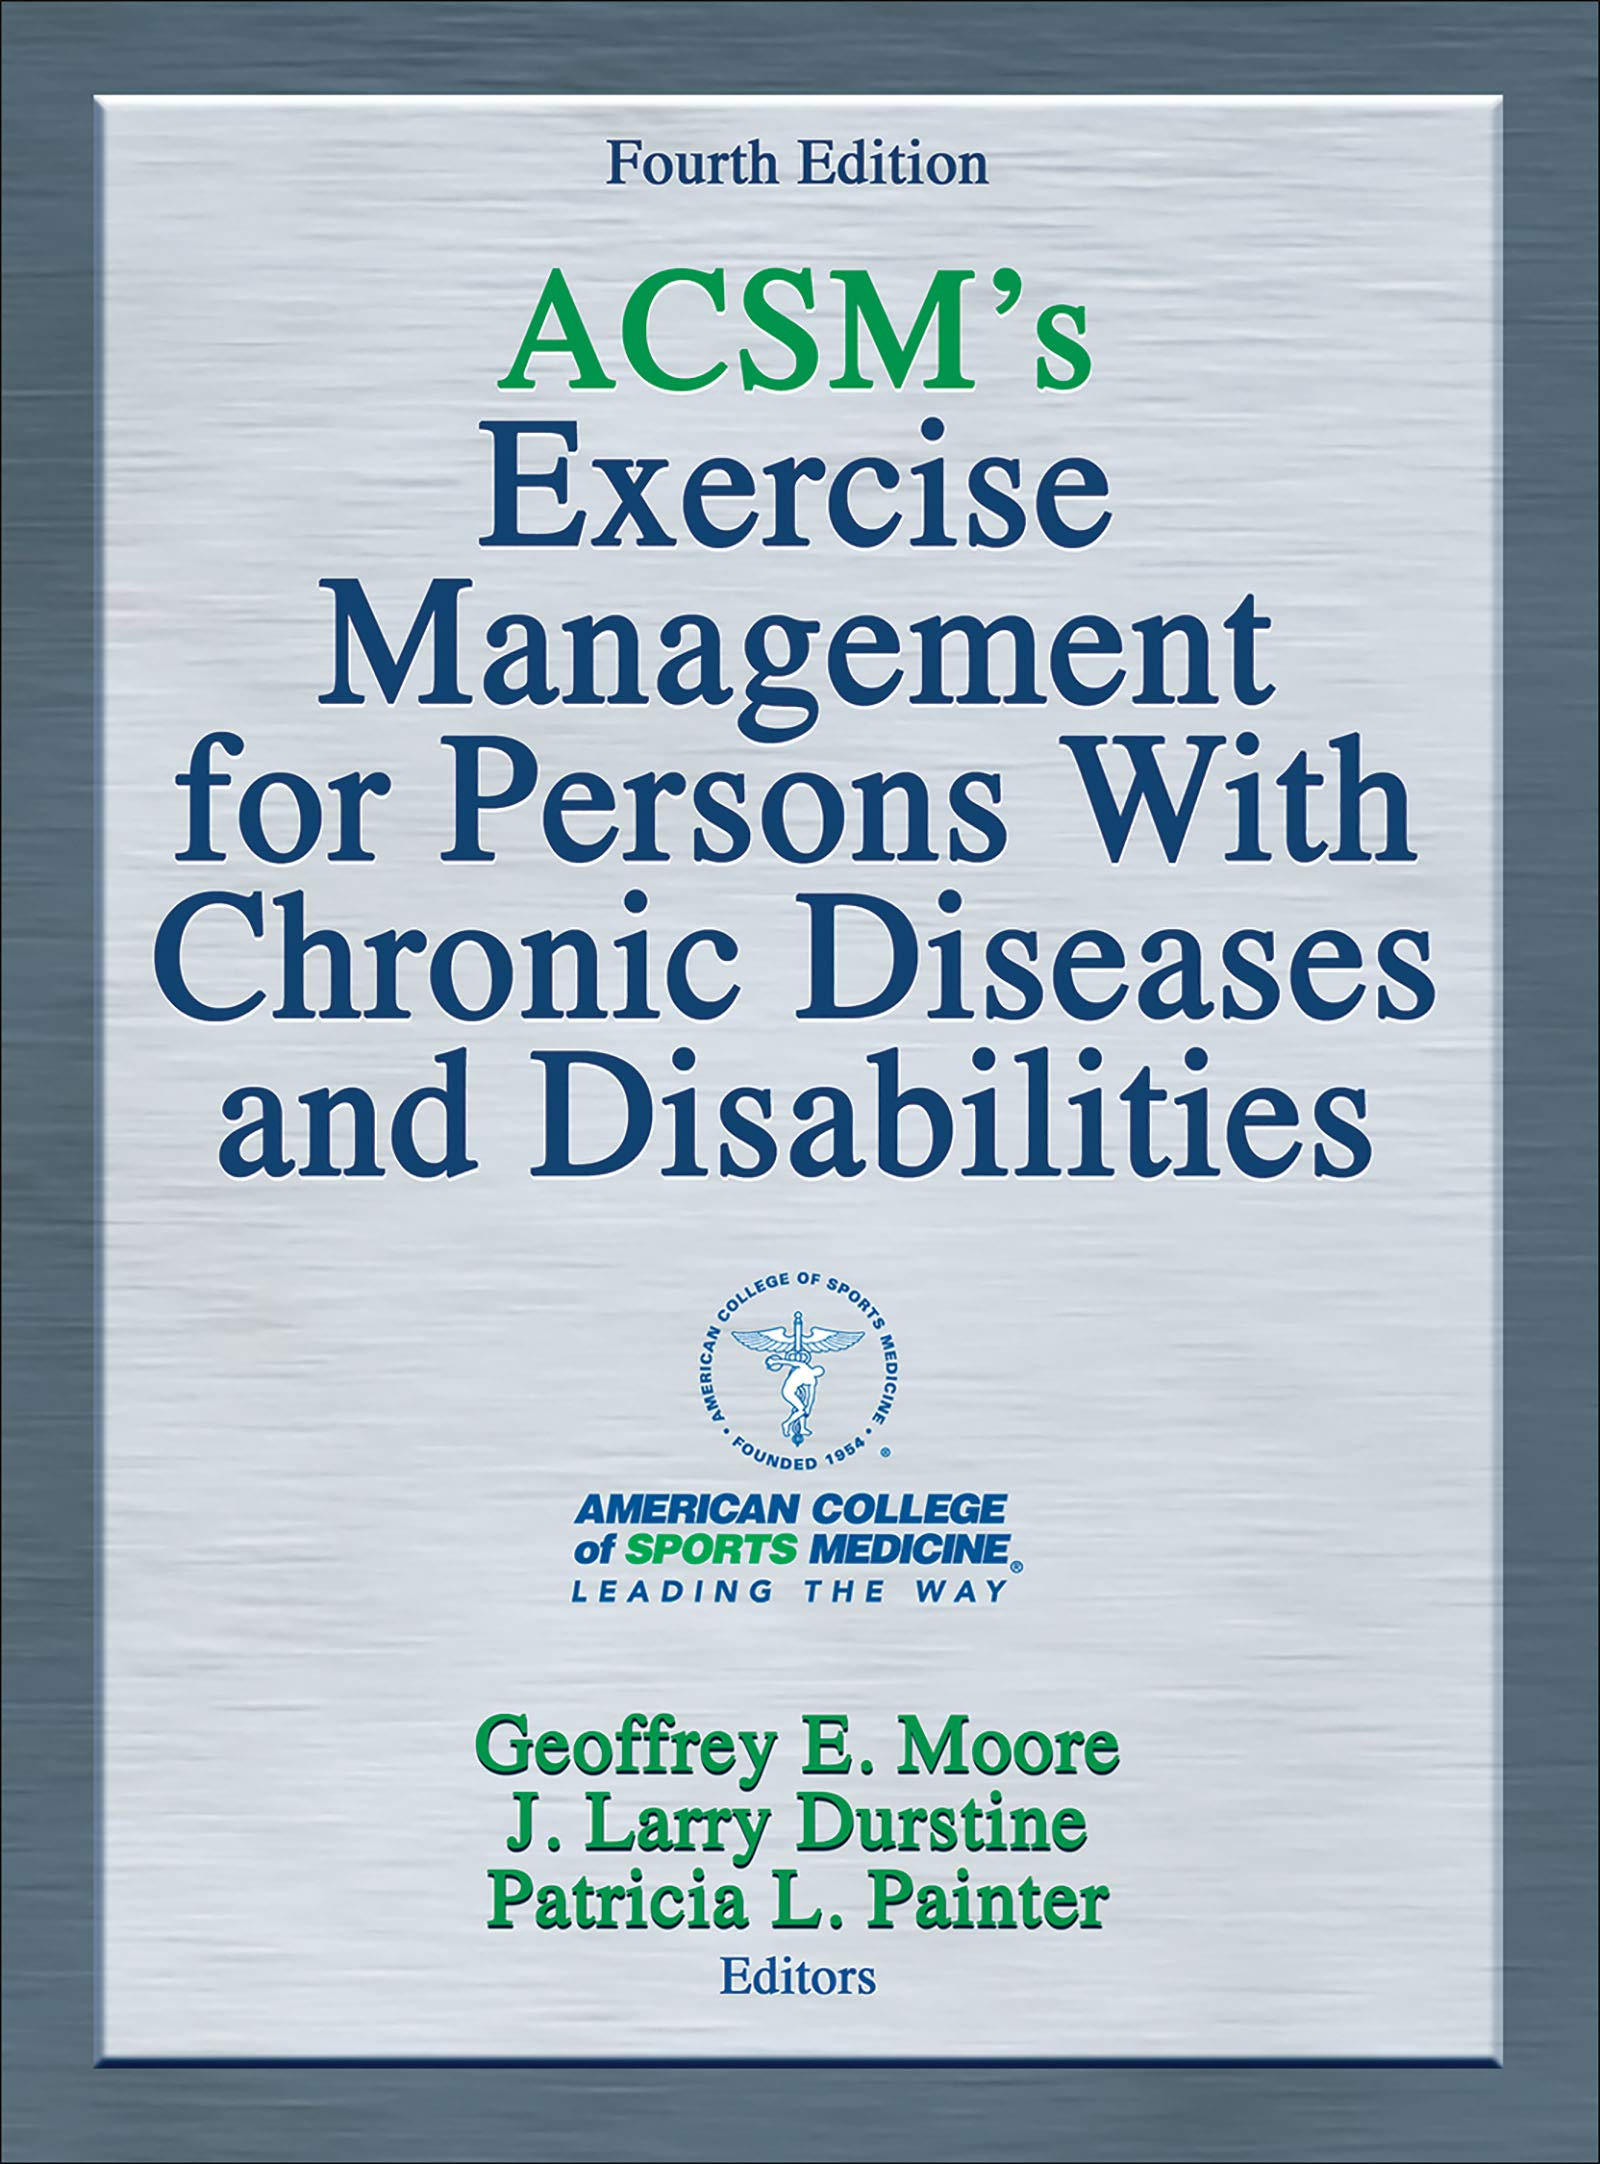 Image OfACSM's Exercise Management For Persons With Chronic Diseases And Disabilities